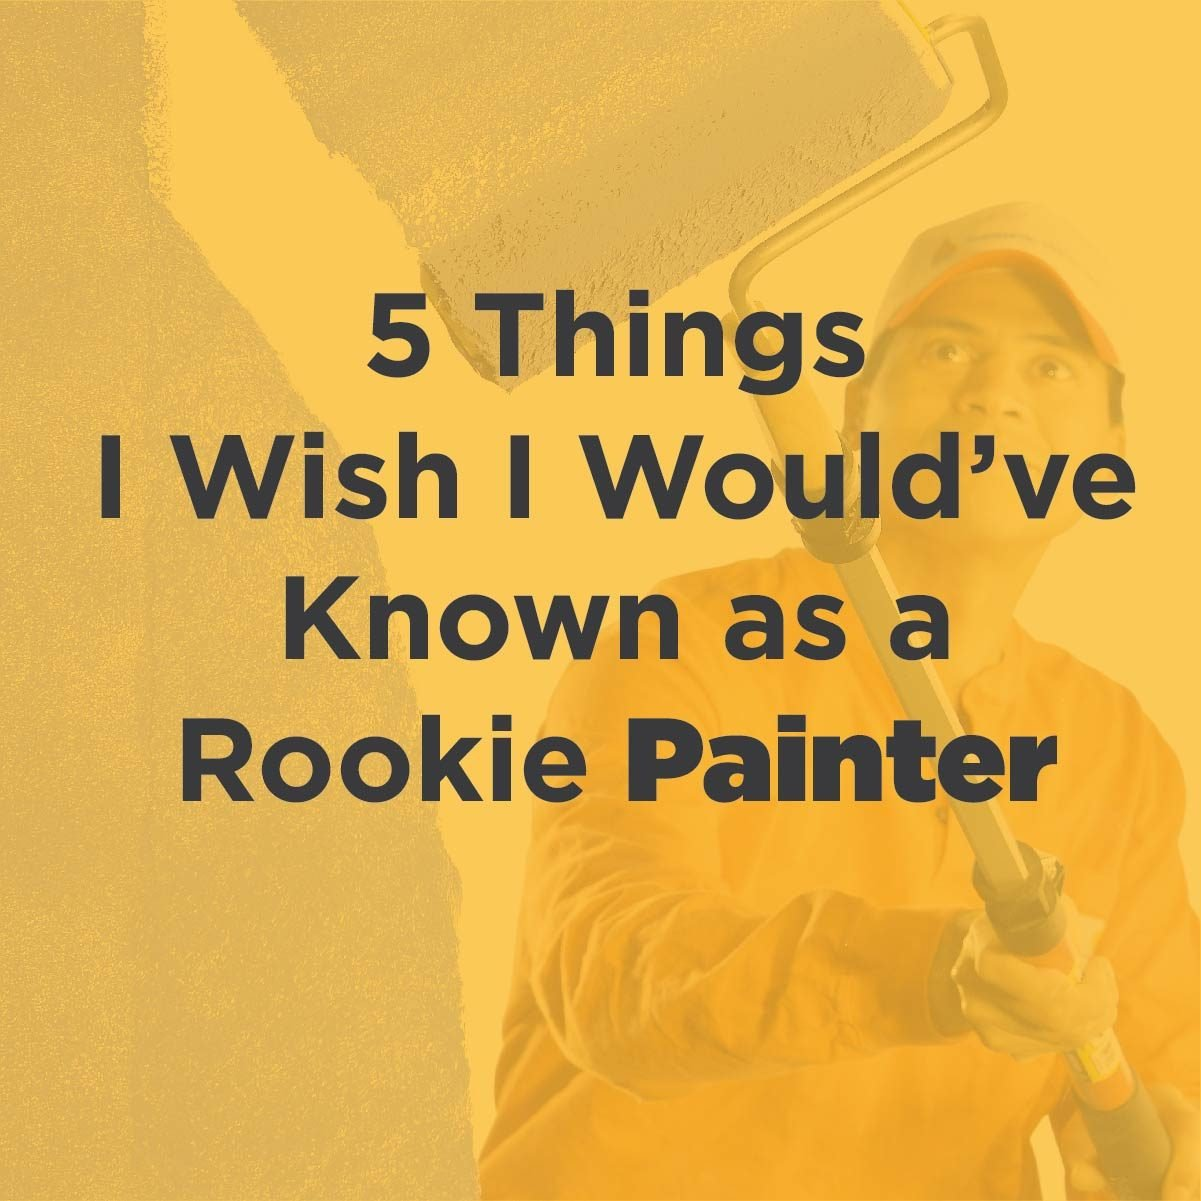 5 Things I Wish I Would've Known as a Rookie Painter